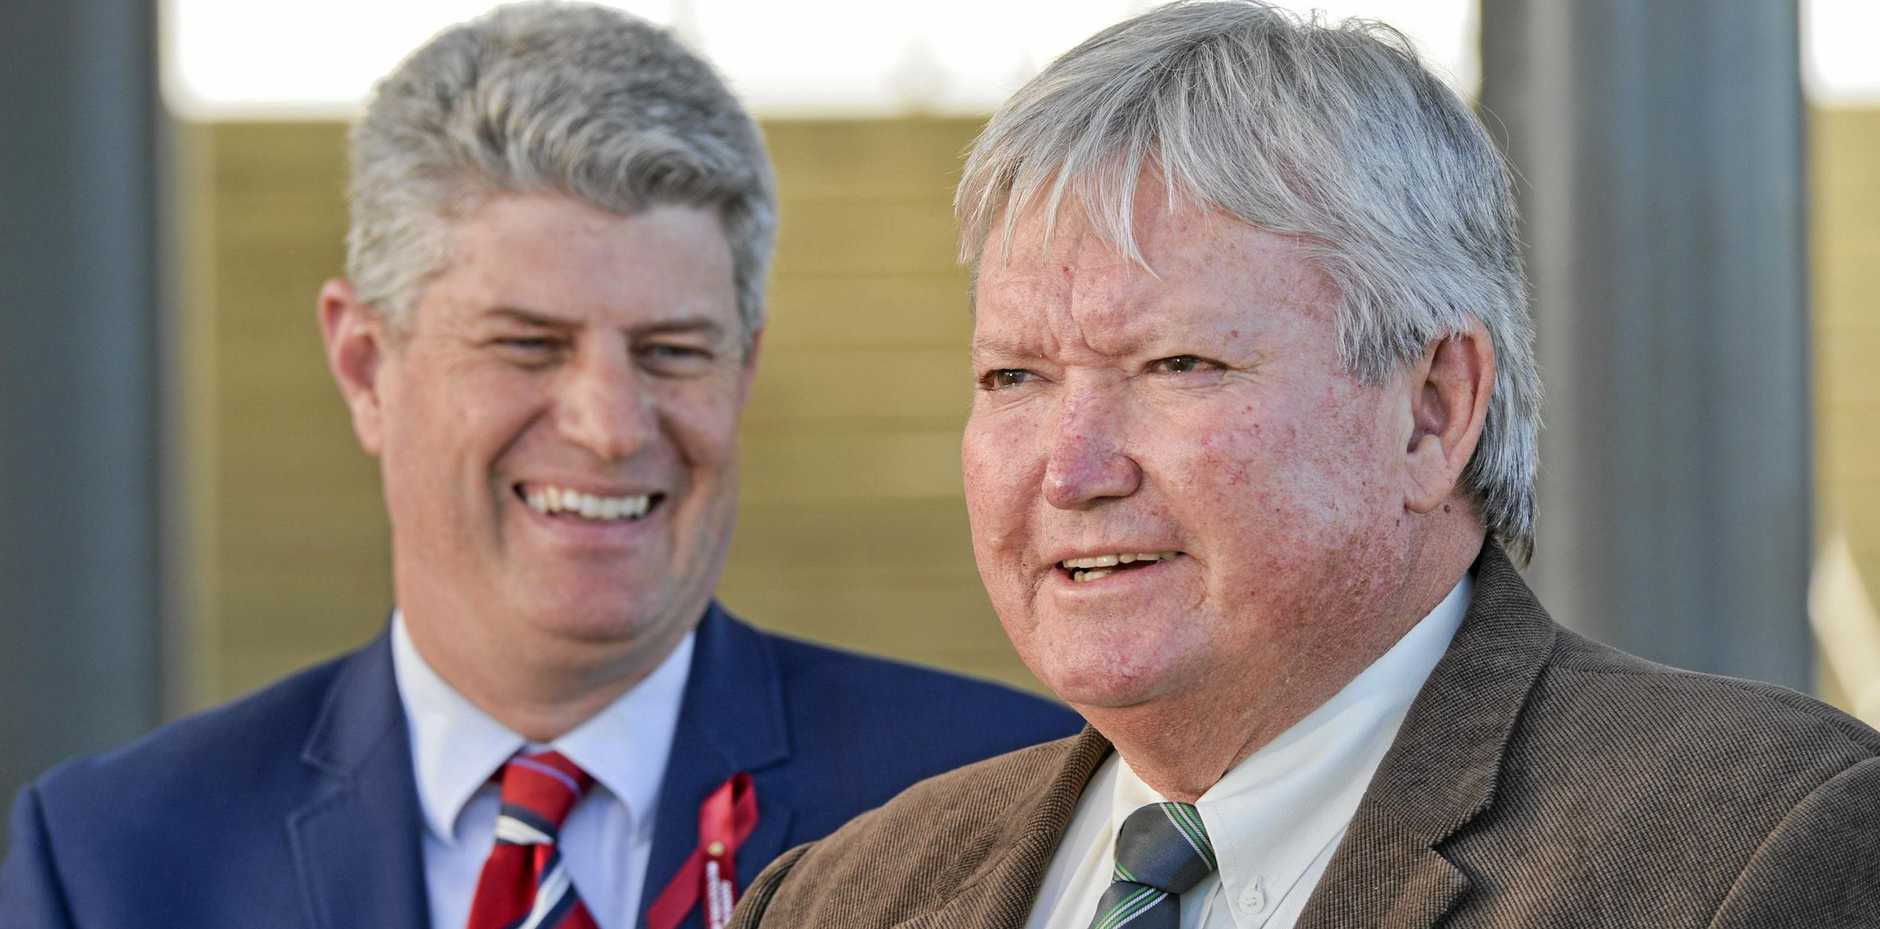 Minister Stirling Hinchliffe (red tie), Ipswich Turf Club chairman Wayne Patch (green tie brown jacket) and Racing Queensland CEO Brendan Parnell (blue tie) at the Ipswich Turf Club for a story about its development.